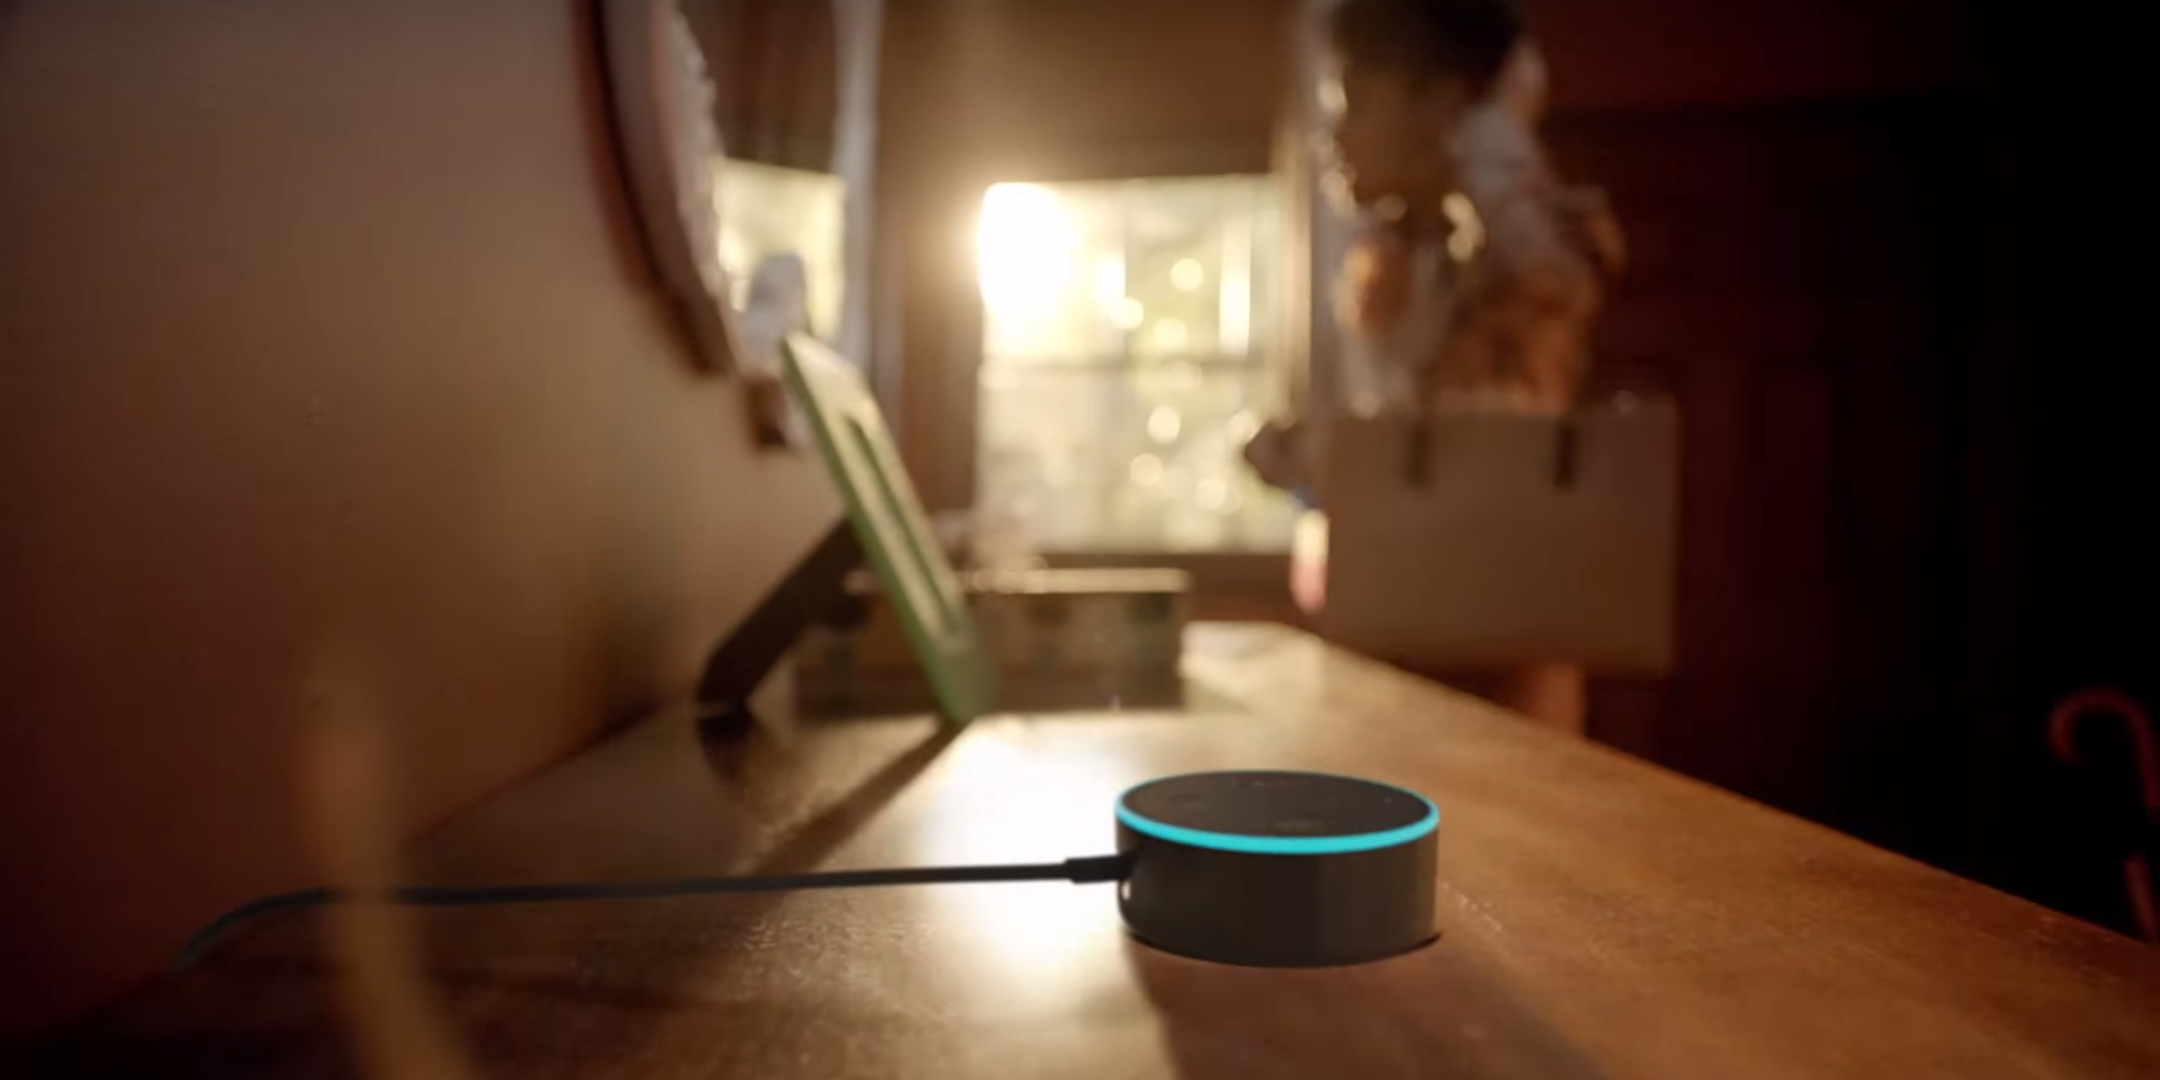 Tech Savvy Gifts 11 last minute tech gifts to order on amazon for mother's day